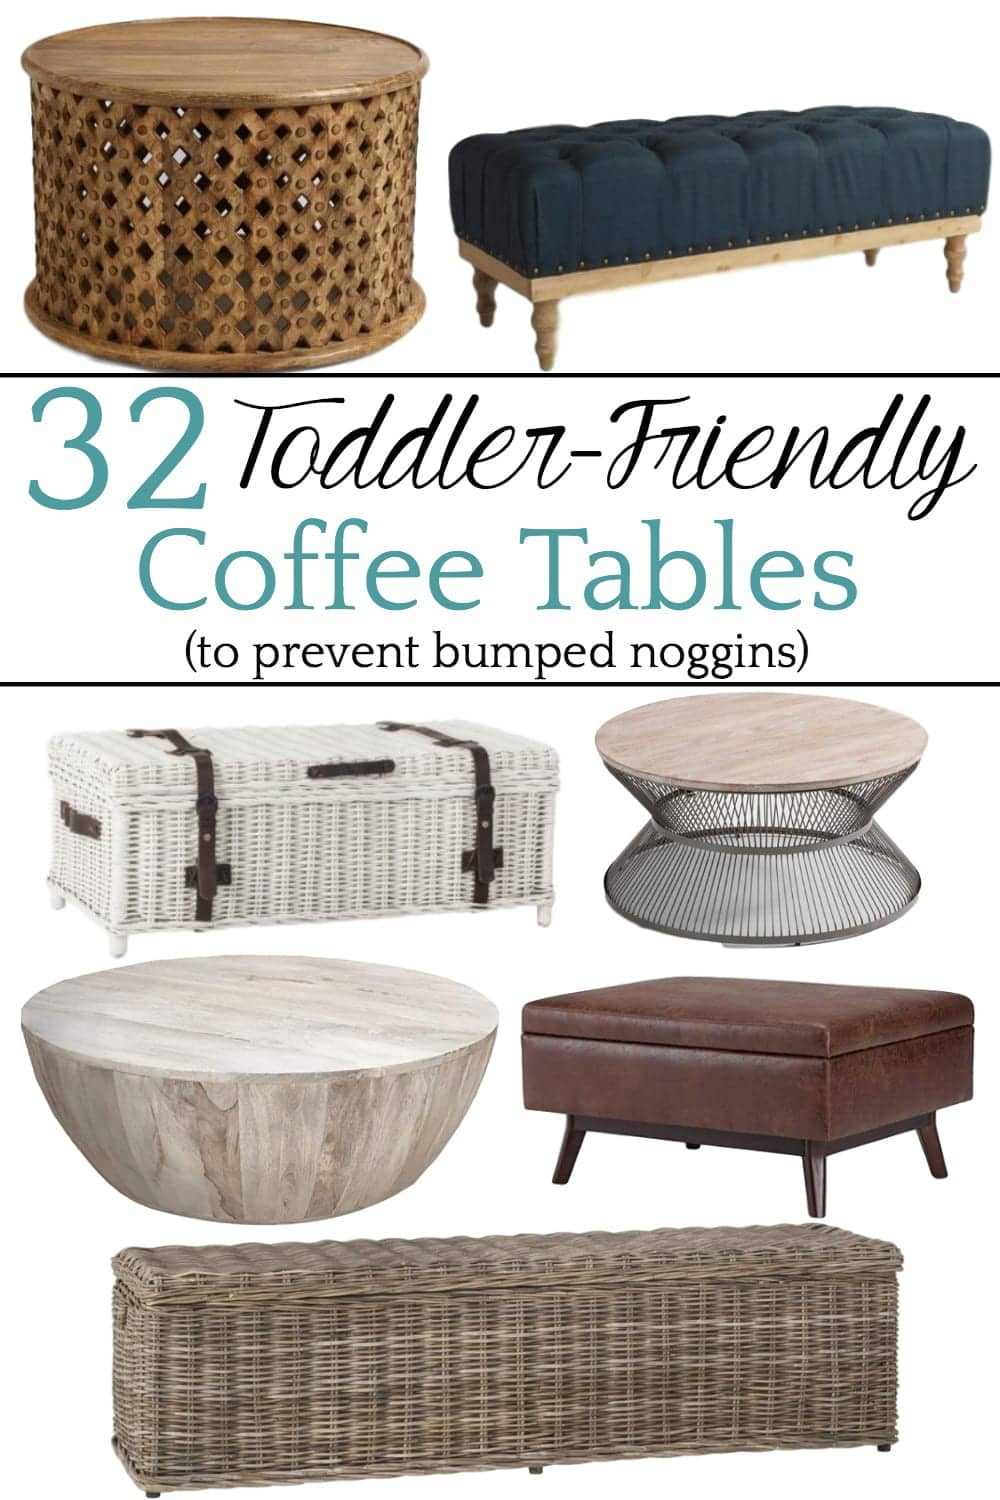 32 of the Best Kid Friendly Coffee Tables | A round-up of the best coffee tables for toddlers and kids with rounded corners, non-breakable materials, easy clean-up from spills, and no tipping.